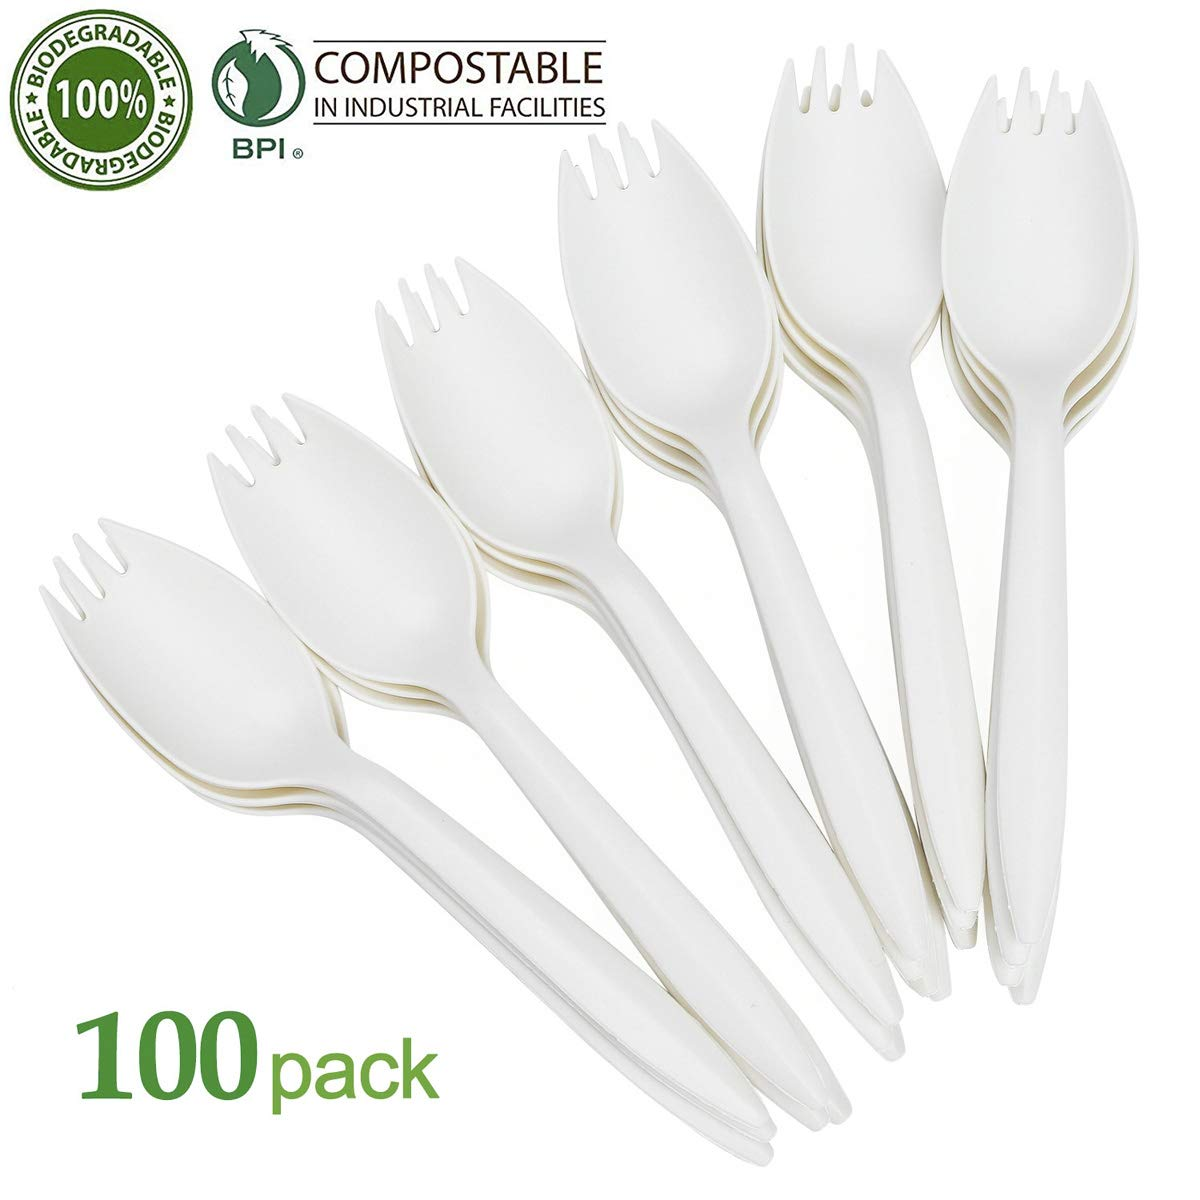 KAISHANE 100% Compostable Sporks - 100 Pieces Disposable Cutlery Set Biodegradable Spork Eco friendly Durable and Heat Resistant Plastic Forks and Spoon, wrapped bulk White by KAISHANE